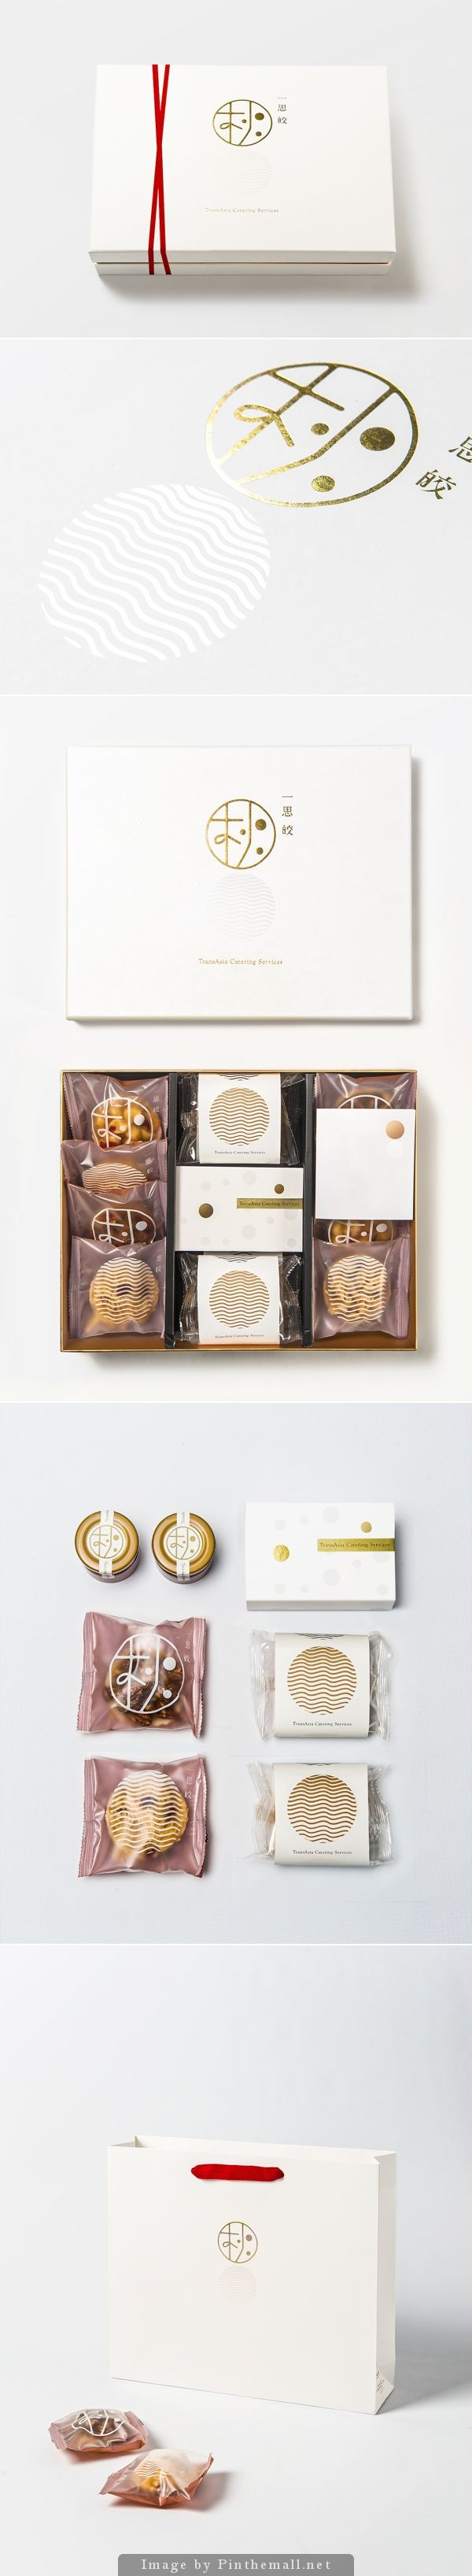 Beautiful #packaging for TransAsia's Mid-autumn festival gifts